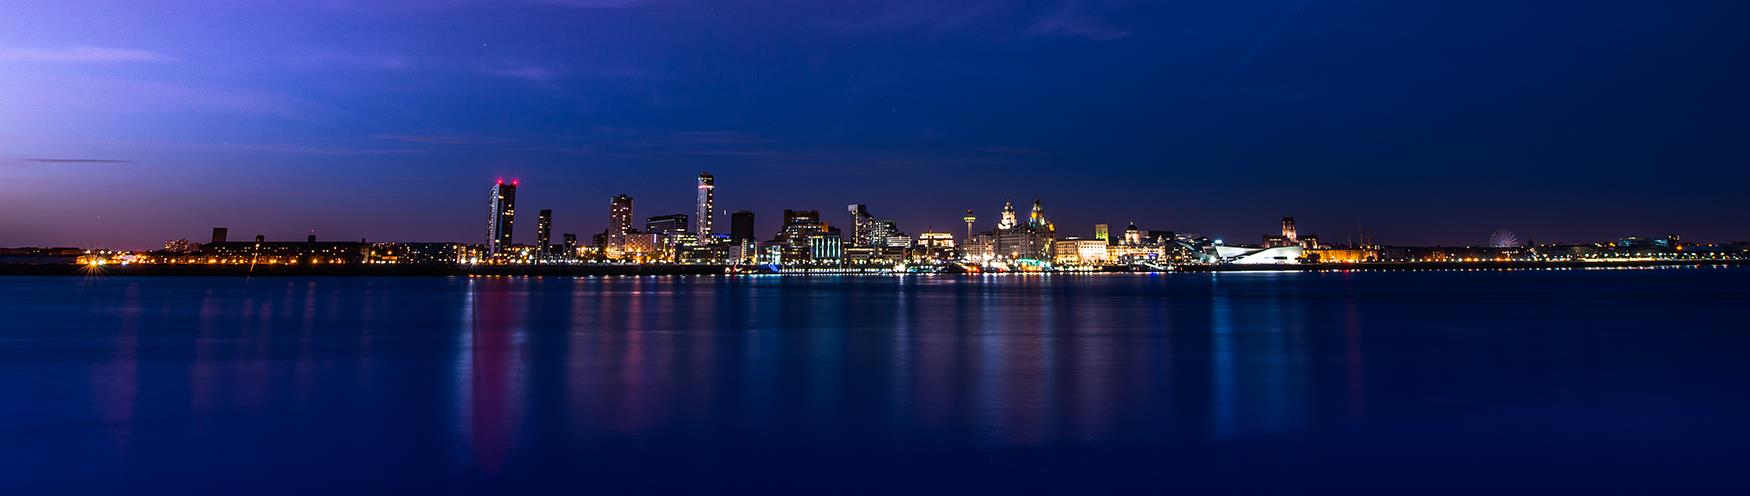 Thumbnail for Liverpool Waterfront